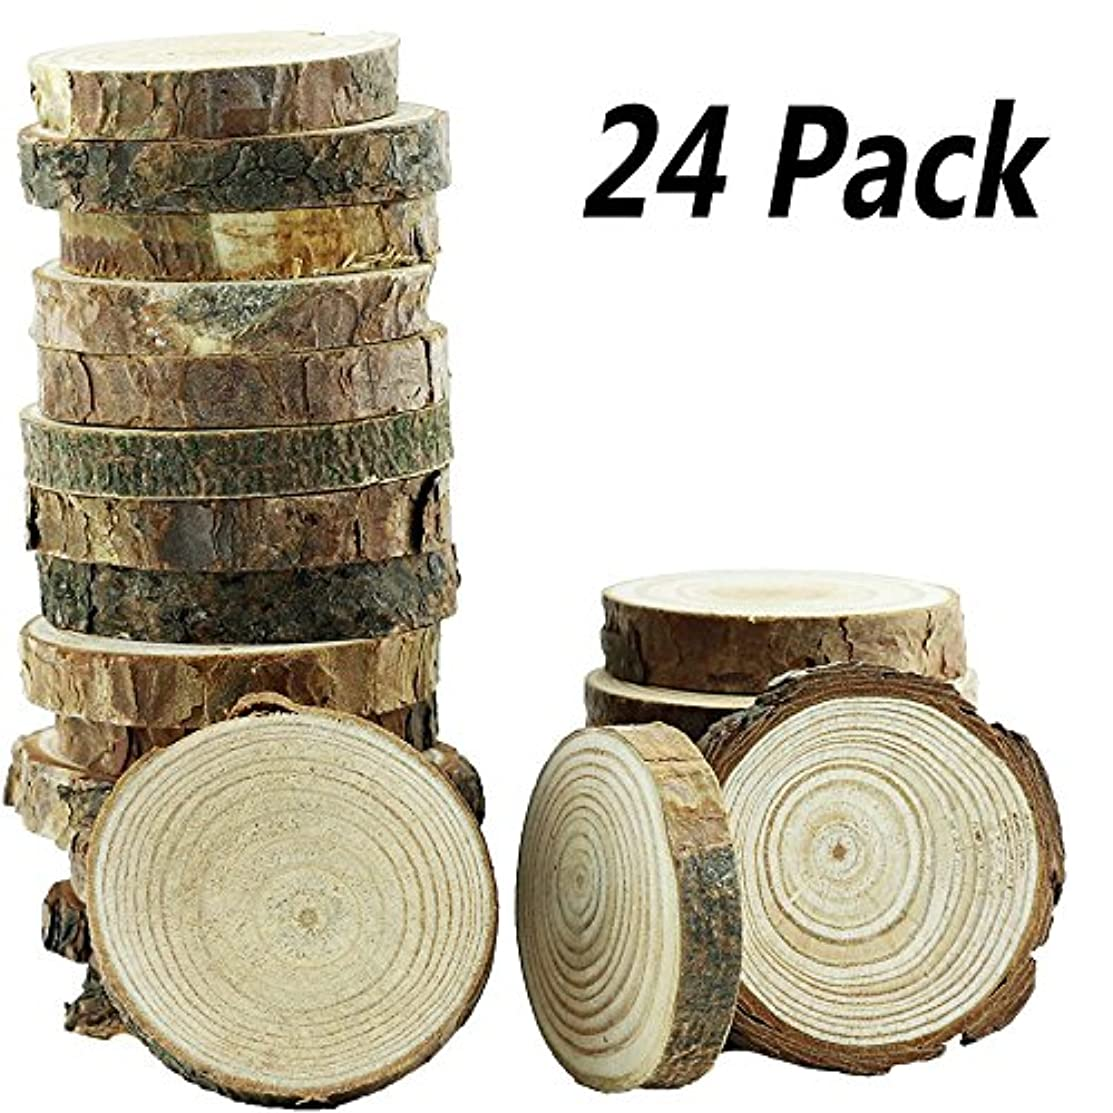 Yexpress 24Pcs 2-2.5-Inch Unfinished Natural Thick Wood Slices Circles with Tree Bark Log Discs for DIY Craft Christmas Rustic Wedding Ornaments